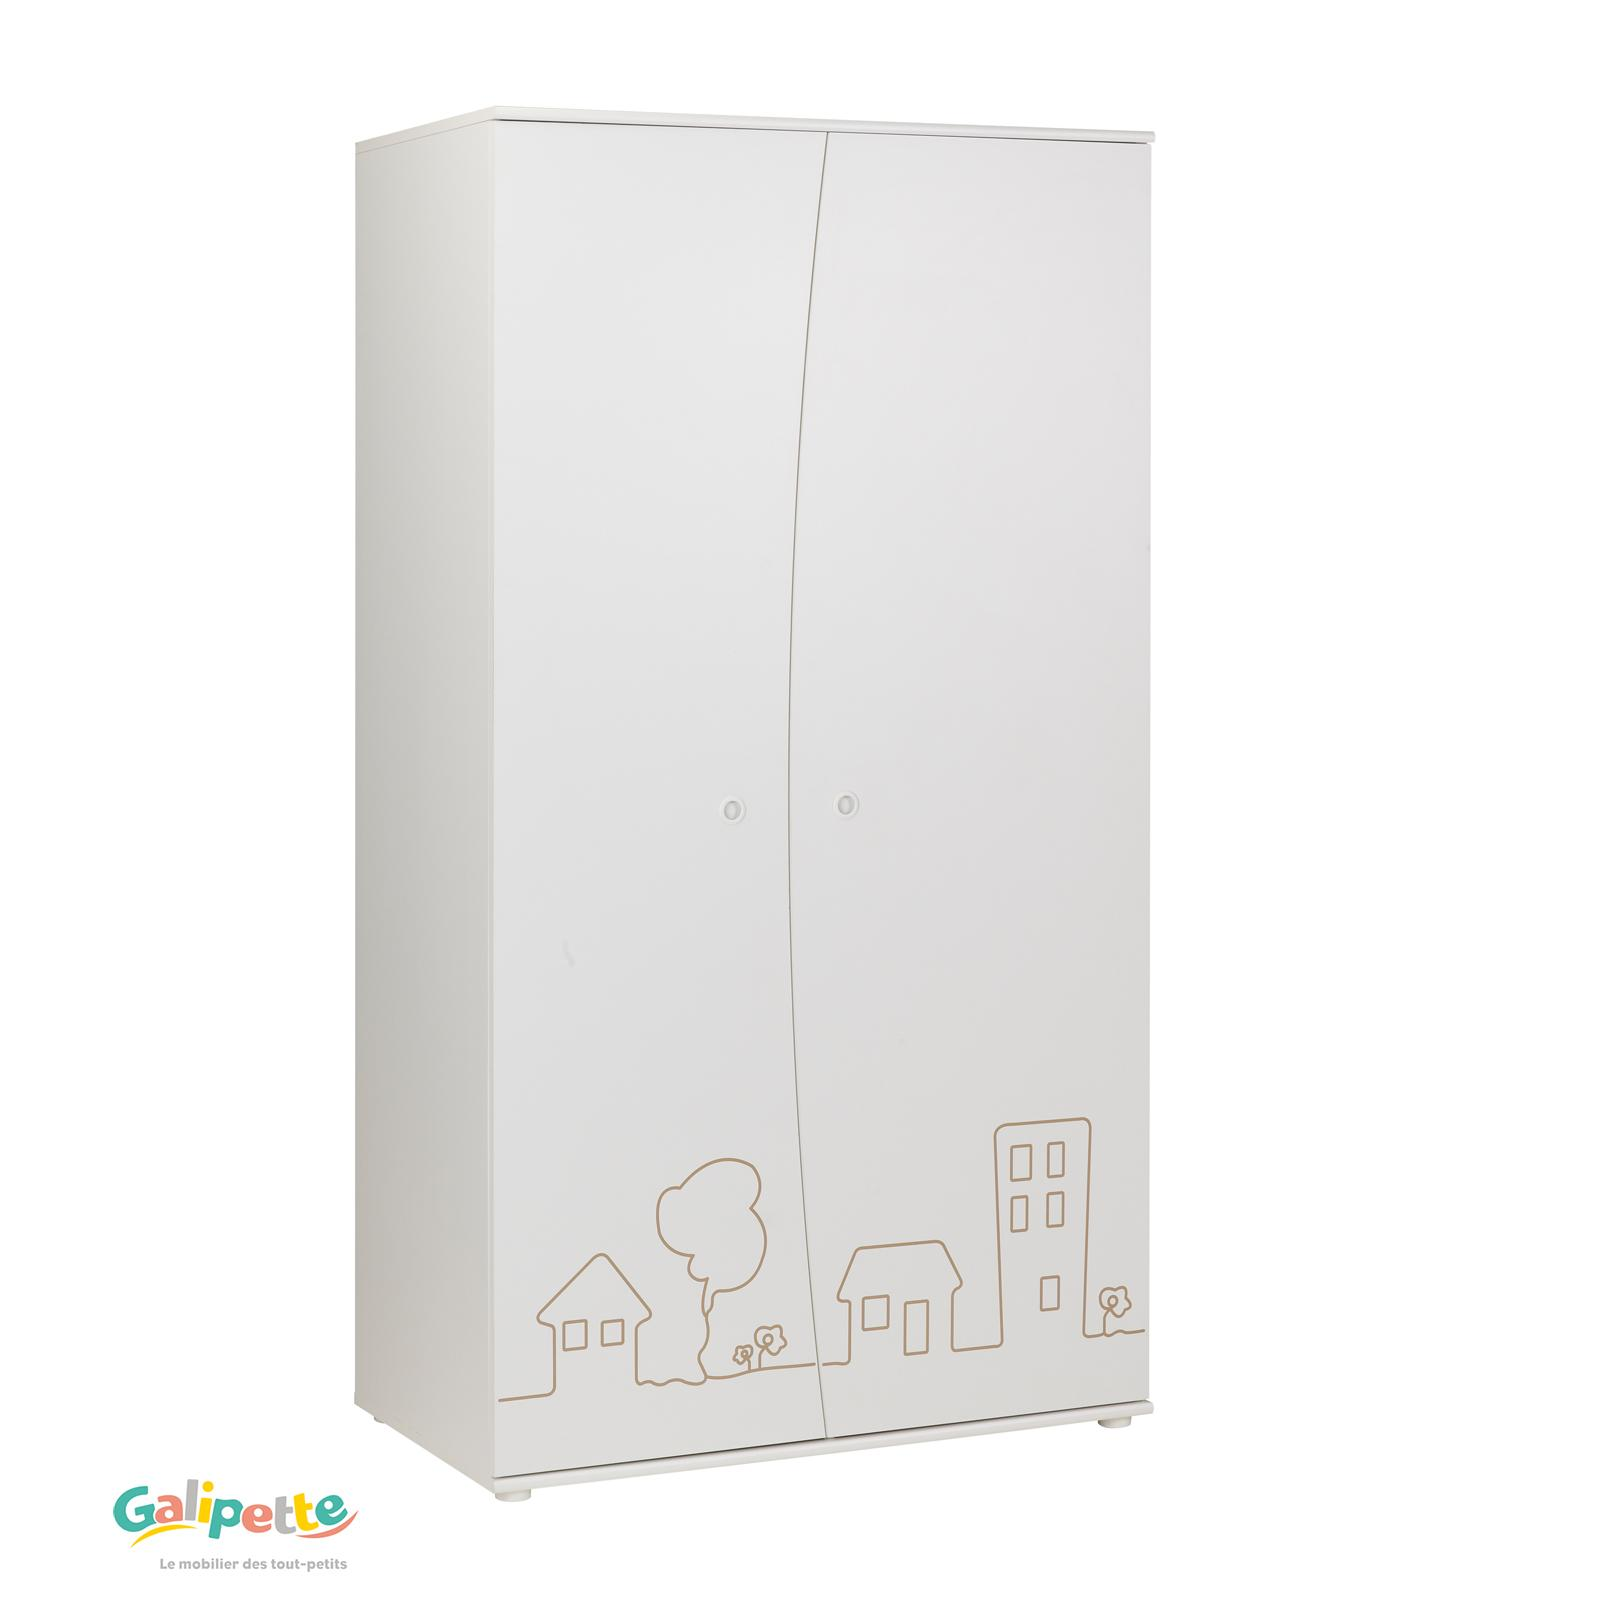 Galipette Little Town Wardrobe 2 Doors